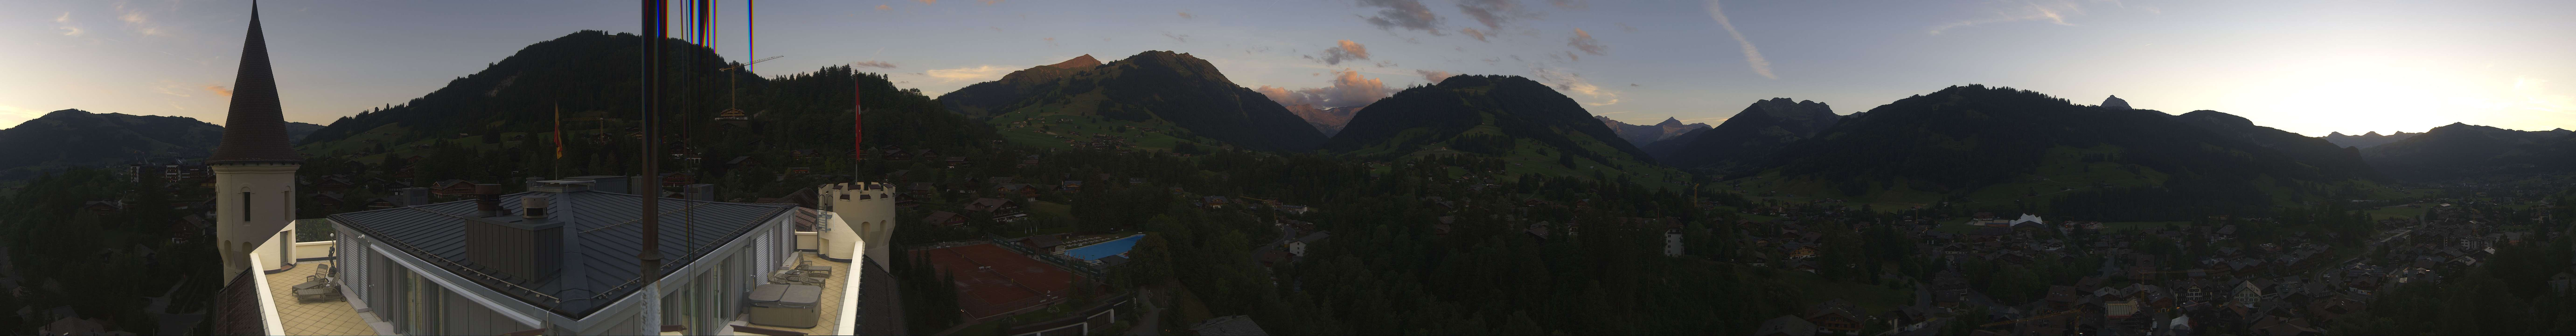 Livecam Gstaad Hotel Palace